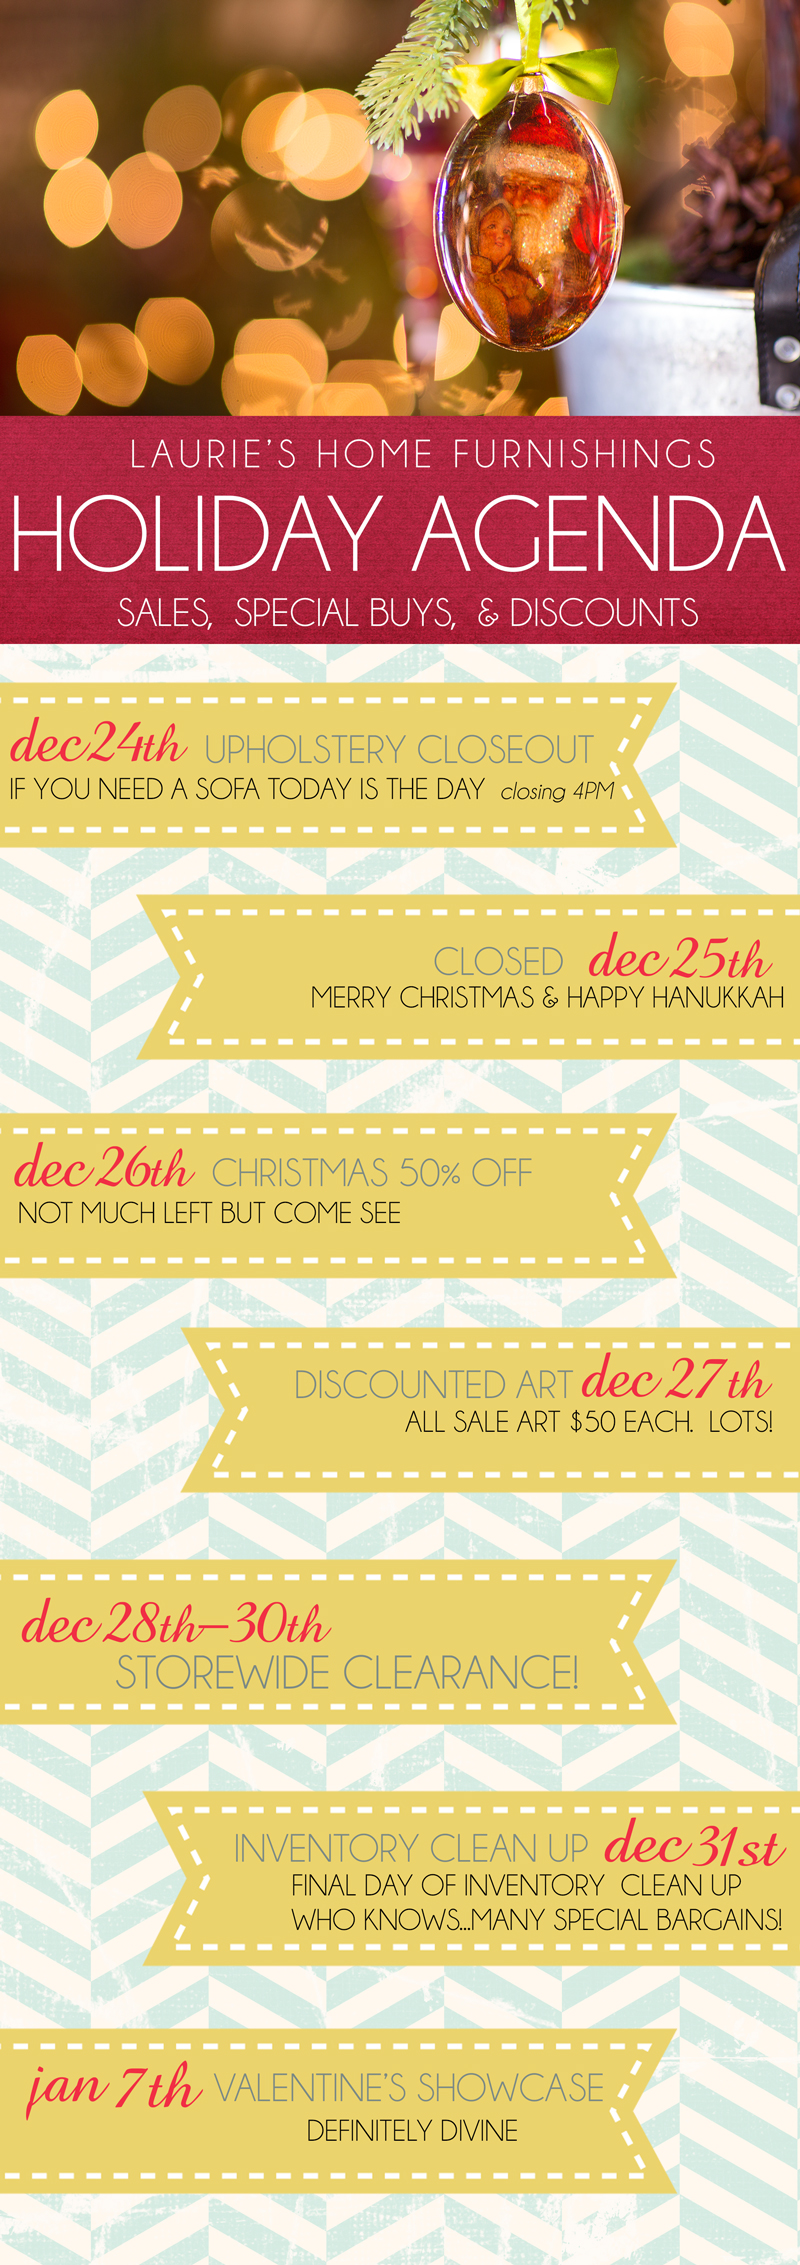 Lauries Holiday Agenda